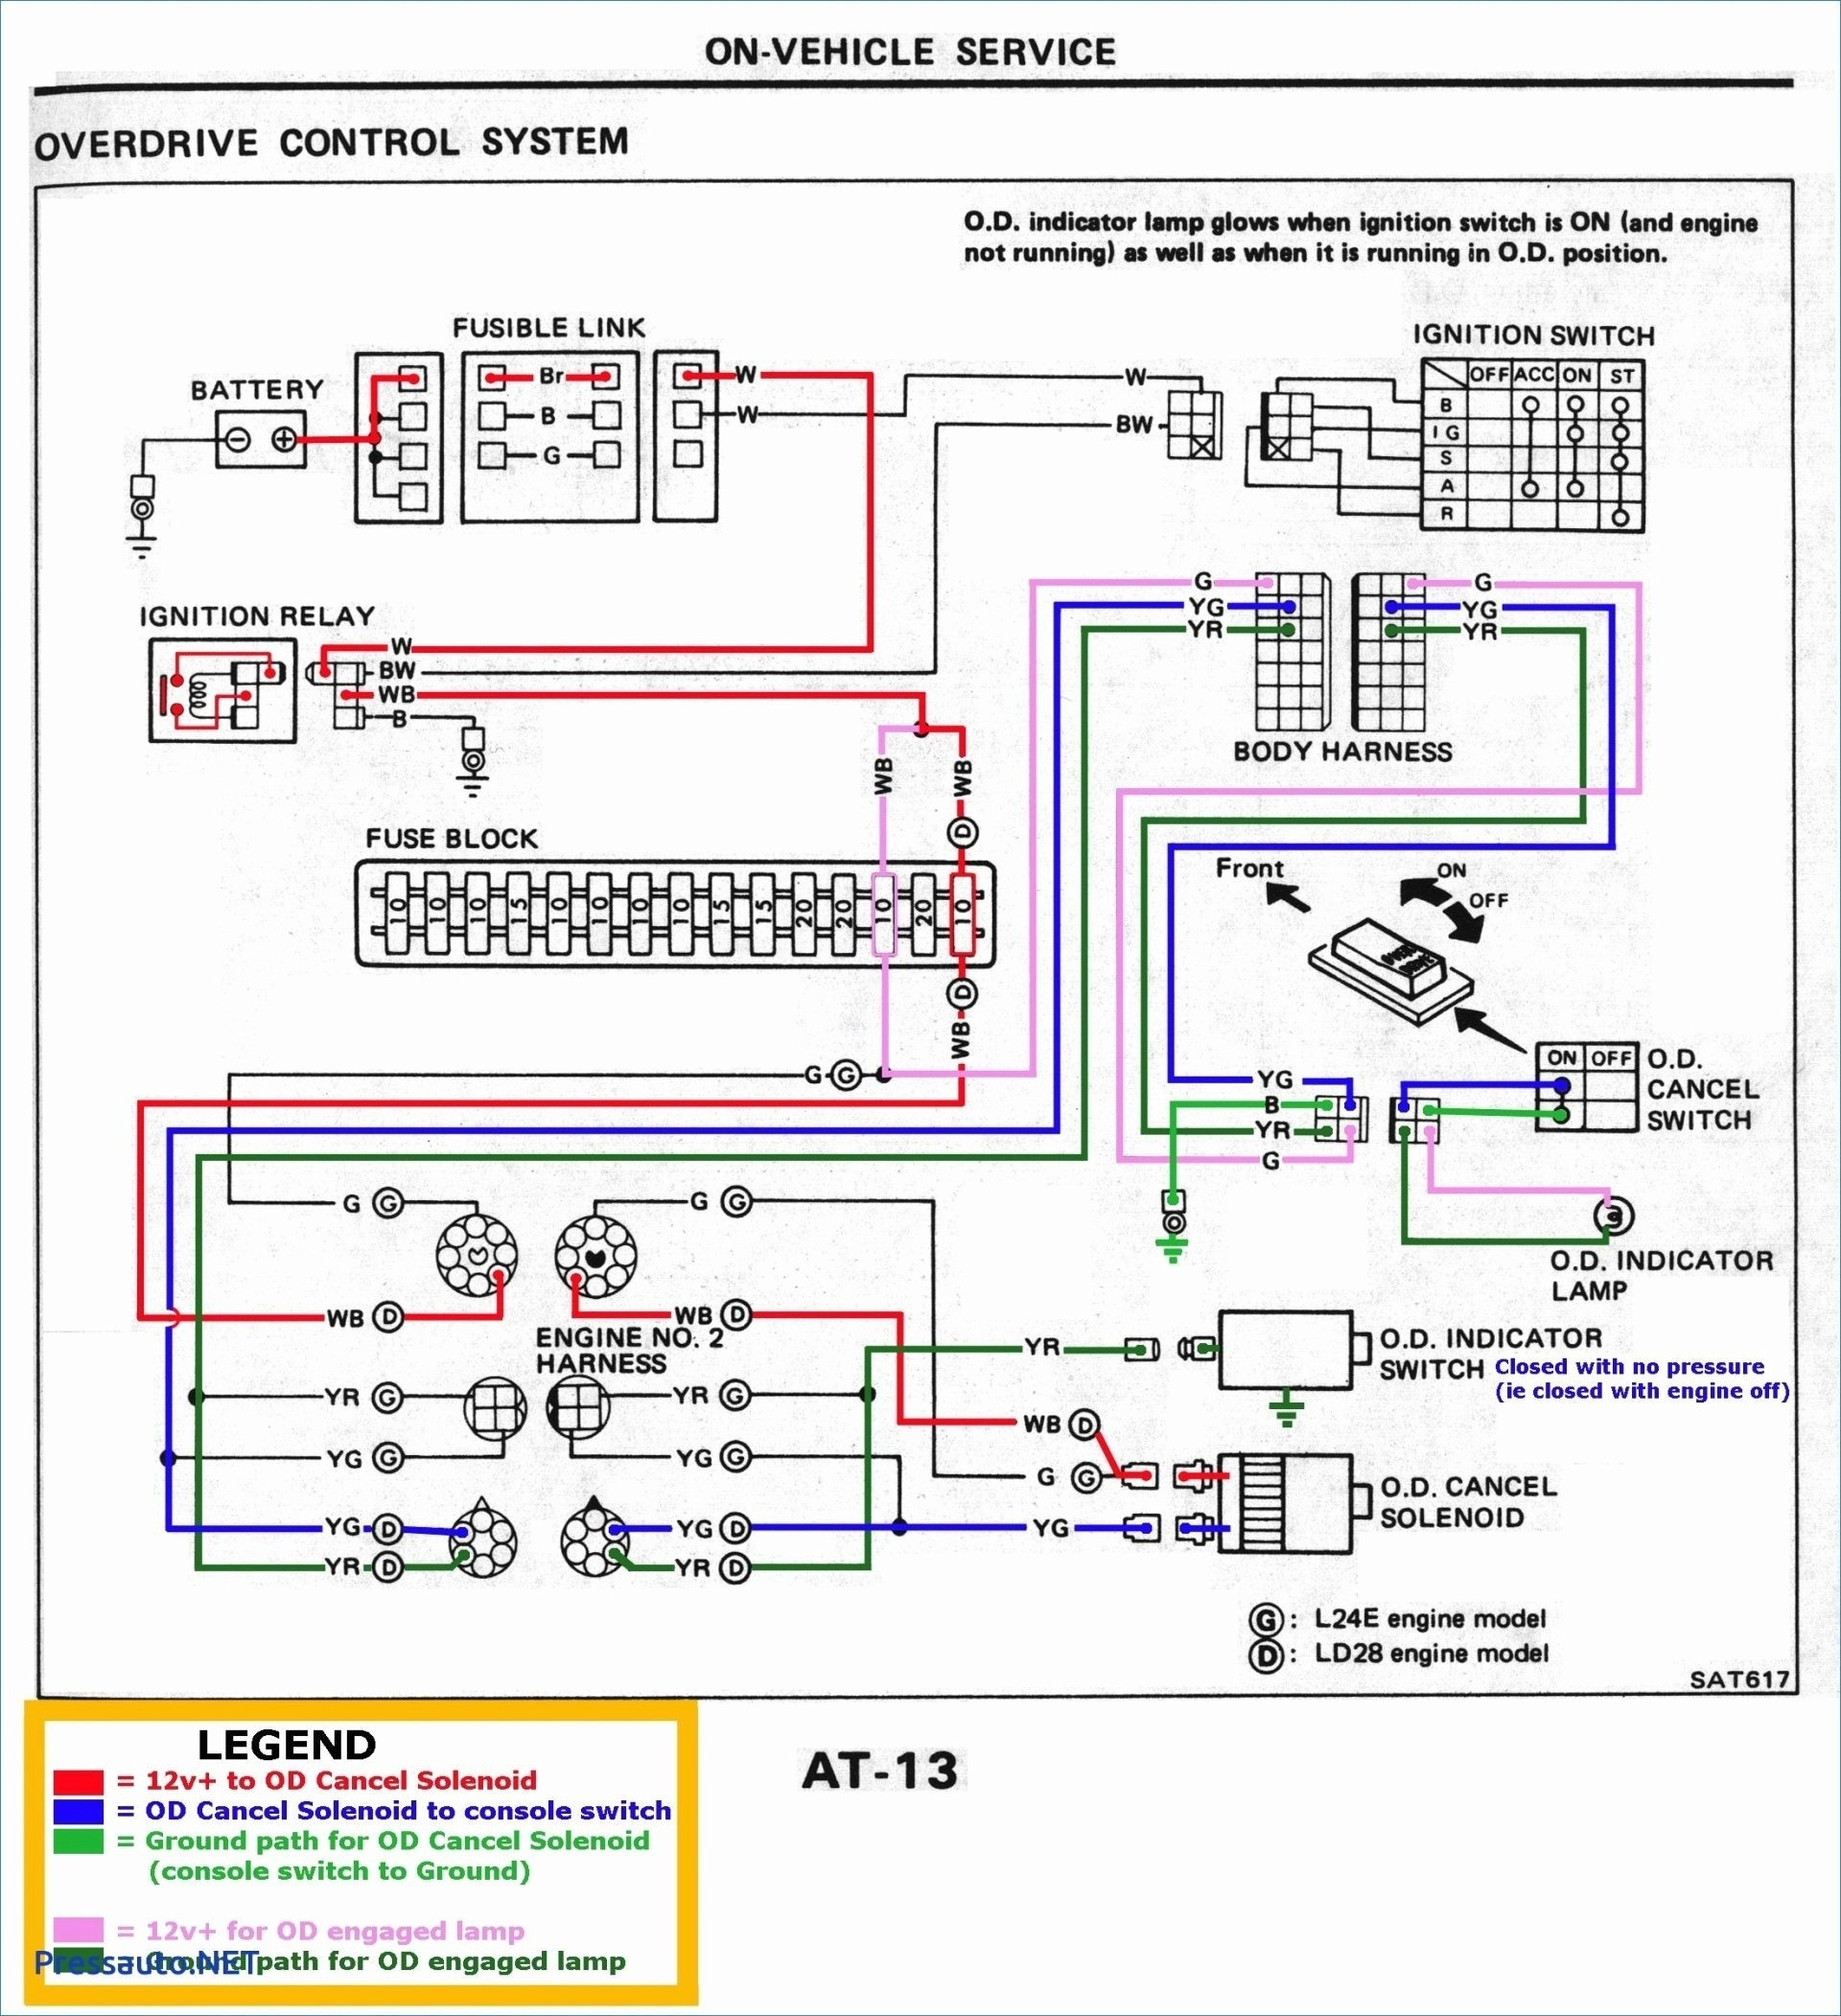 hight resolution of bplug denso wiring diagram wiring diagram data schema johnson controls wiring diagram bplug denso wiring diagram